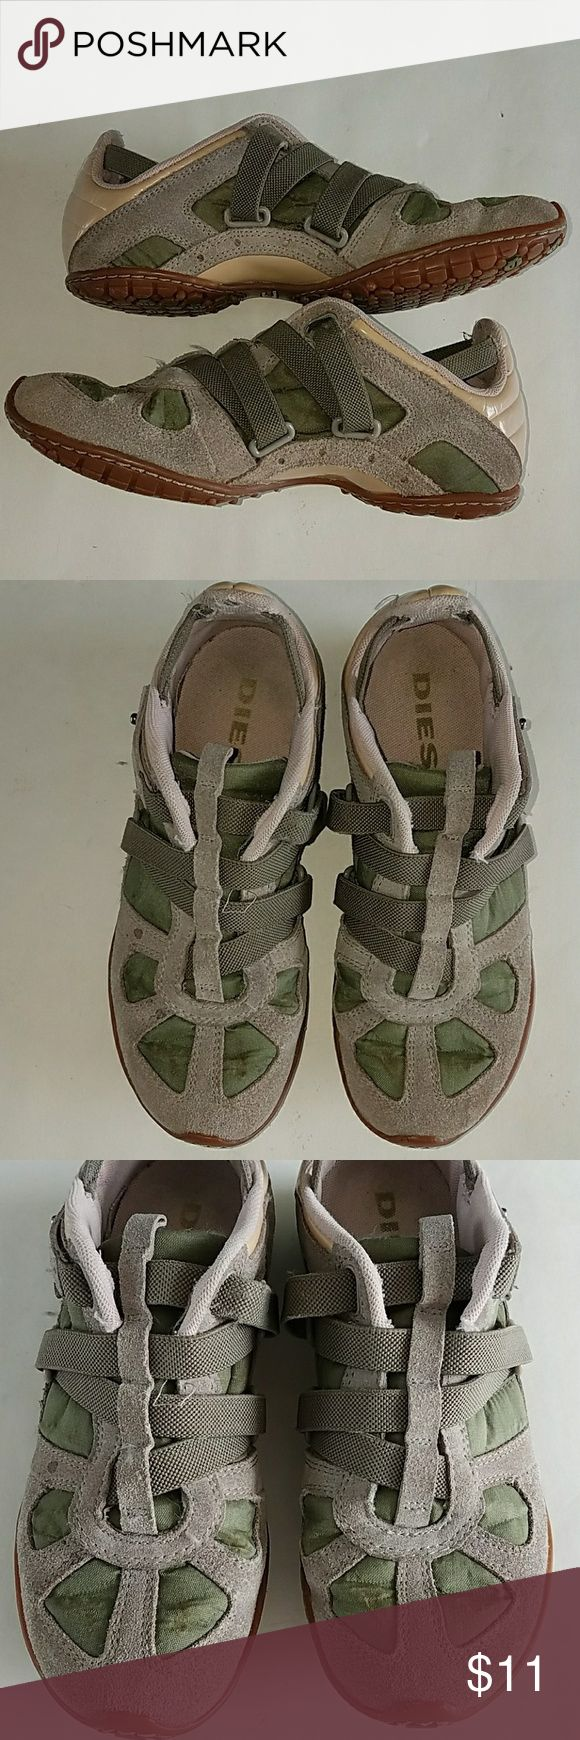 Diesel shoes sneakers sz 6 Diesel shoes sneakers sz 6 Clean inside and out!!! Light signs of wear but still in veryy good shape!!! Diesel Shoes Athletic Shoes